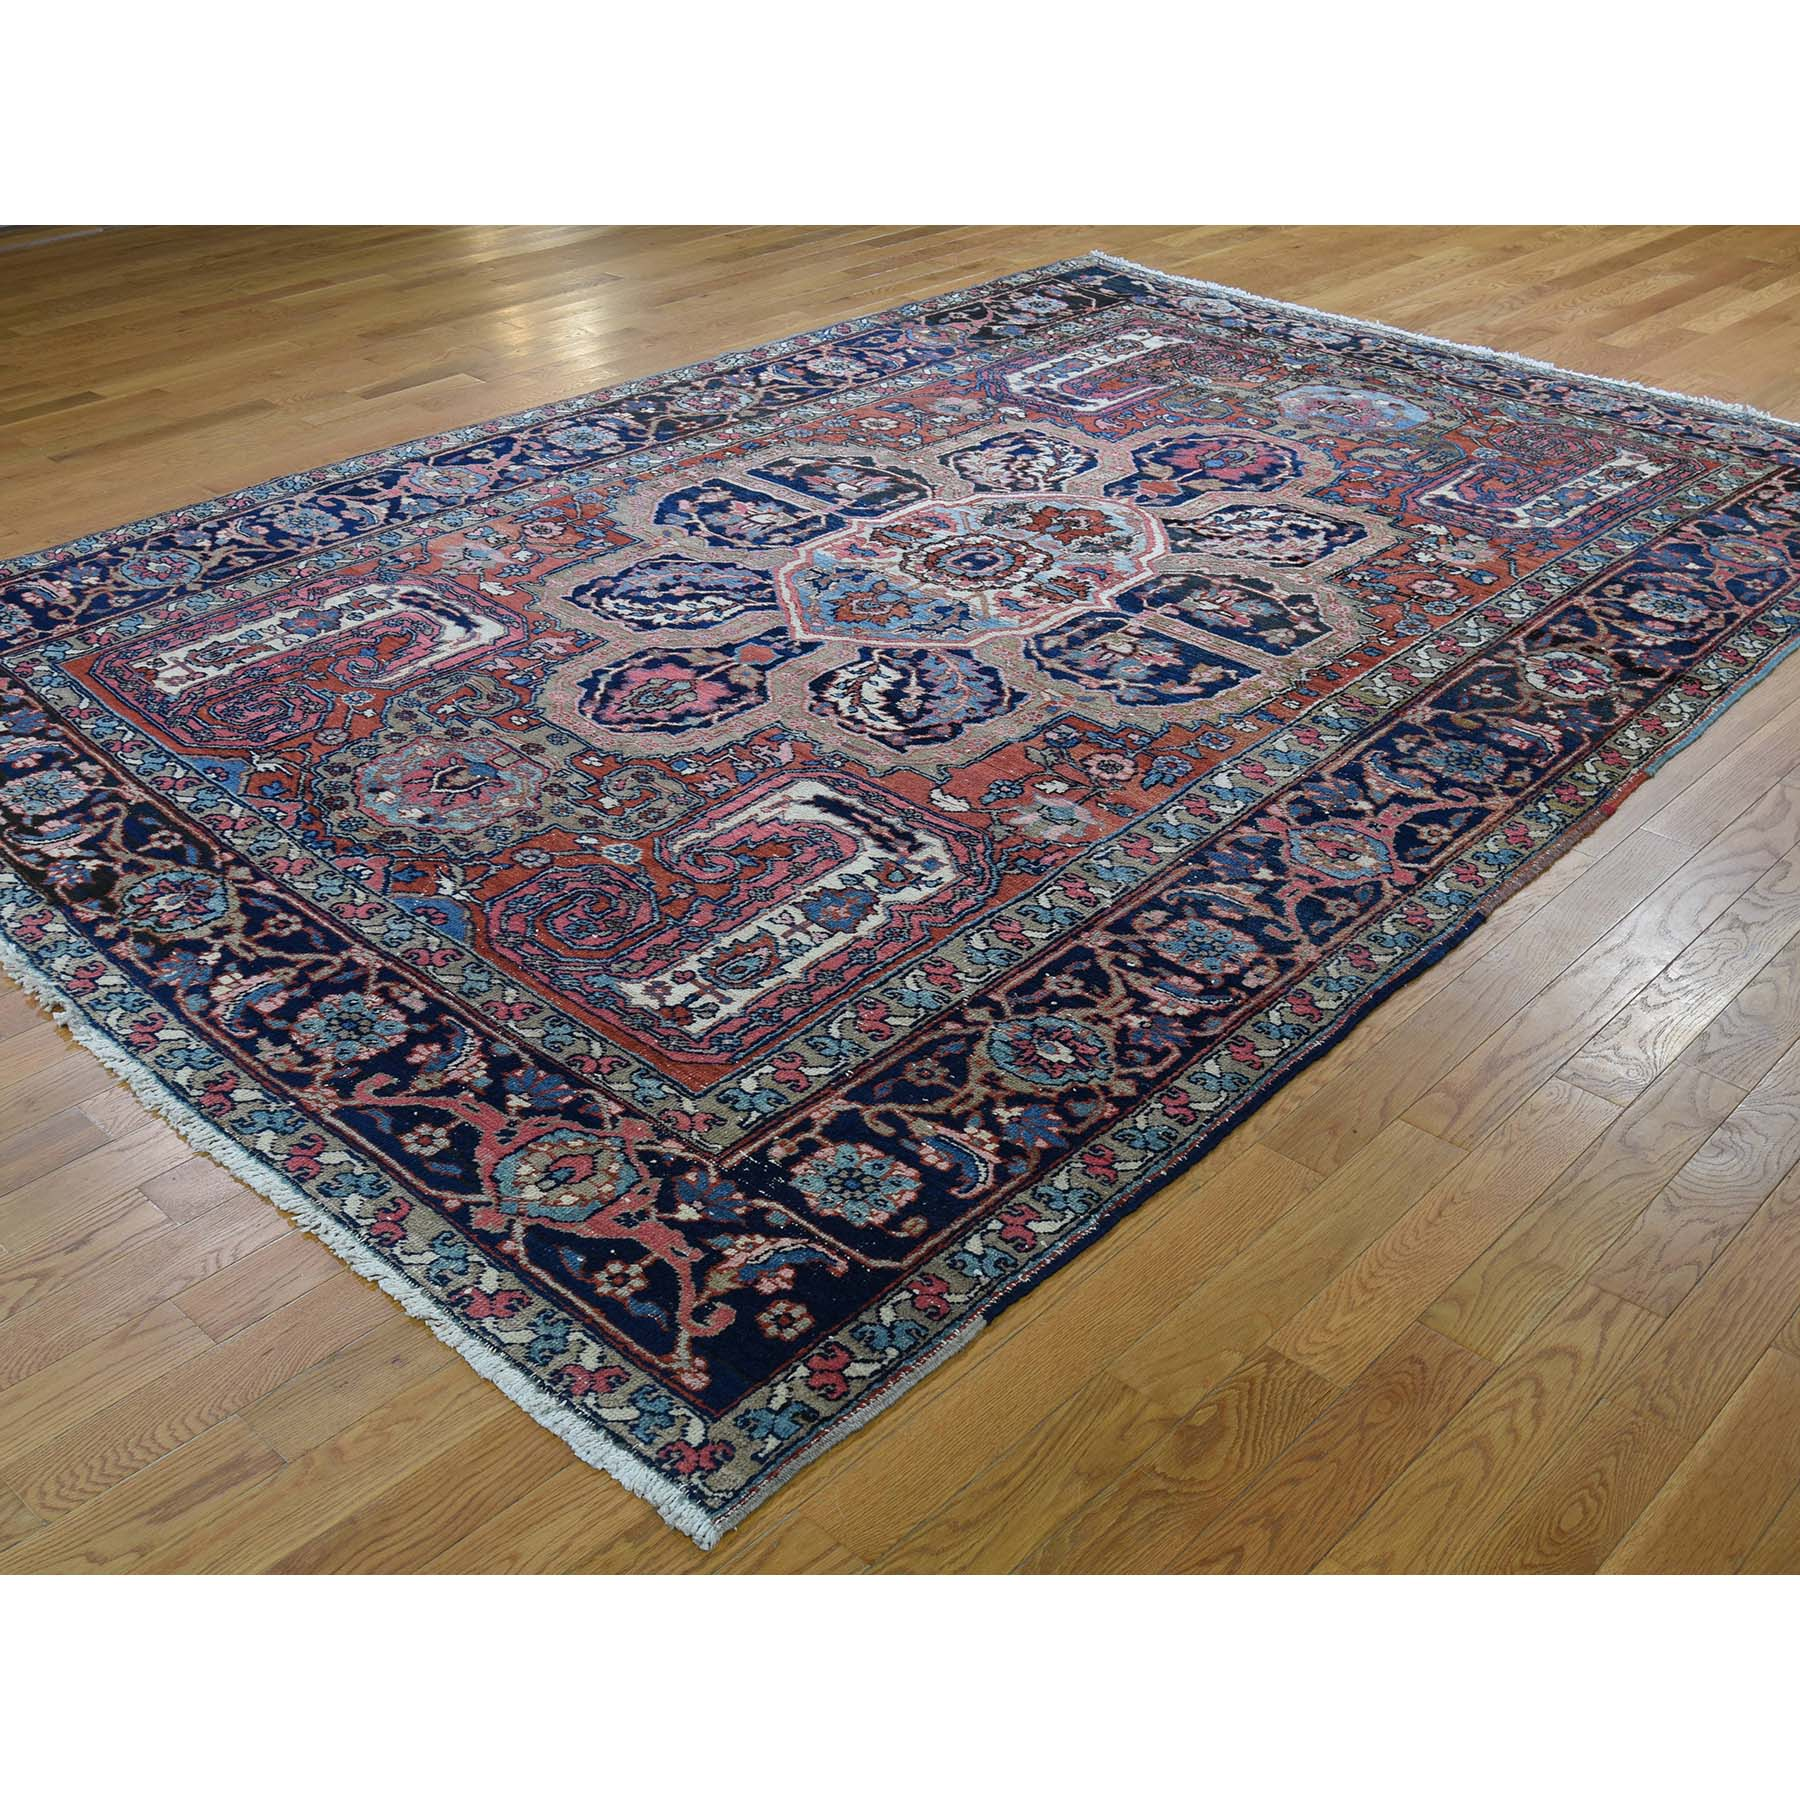 7-9 x11- Flower Design Antique Persian Heriz Good Condition Hand-Knotted Oriental Rug